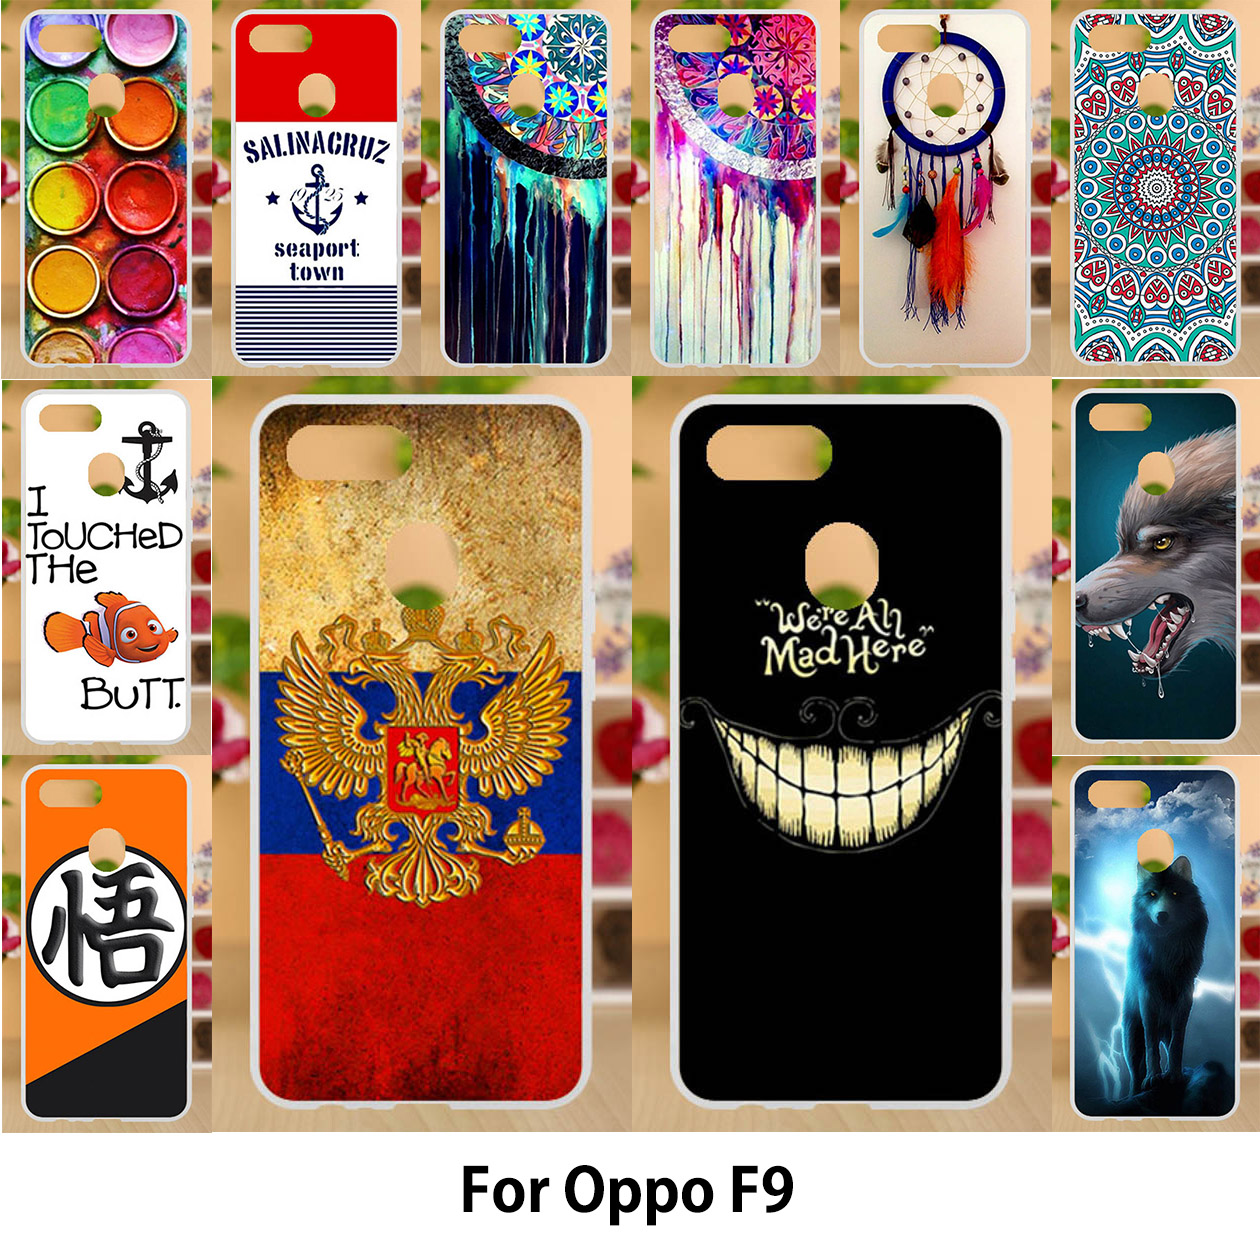 c0e826aad0 Anunob Case For Oppo F9 Cases TPU Soft Silicone Cover For Oppo F9 Pro Covers  Painting Animals 6.3 inch Colorful Smile Bags